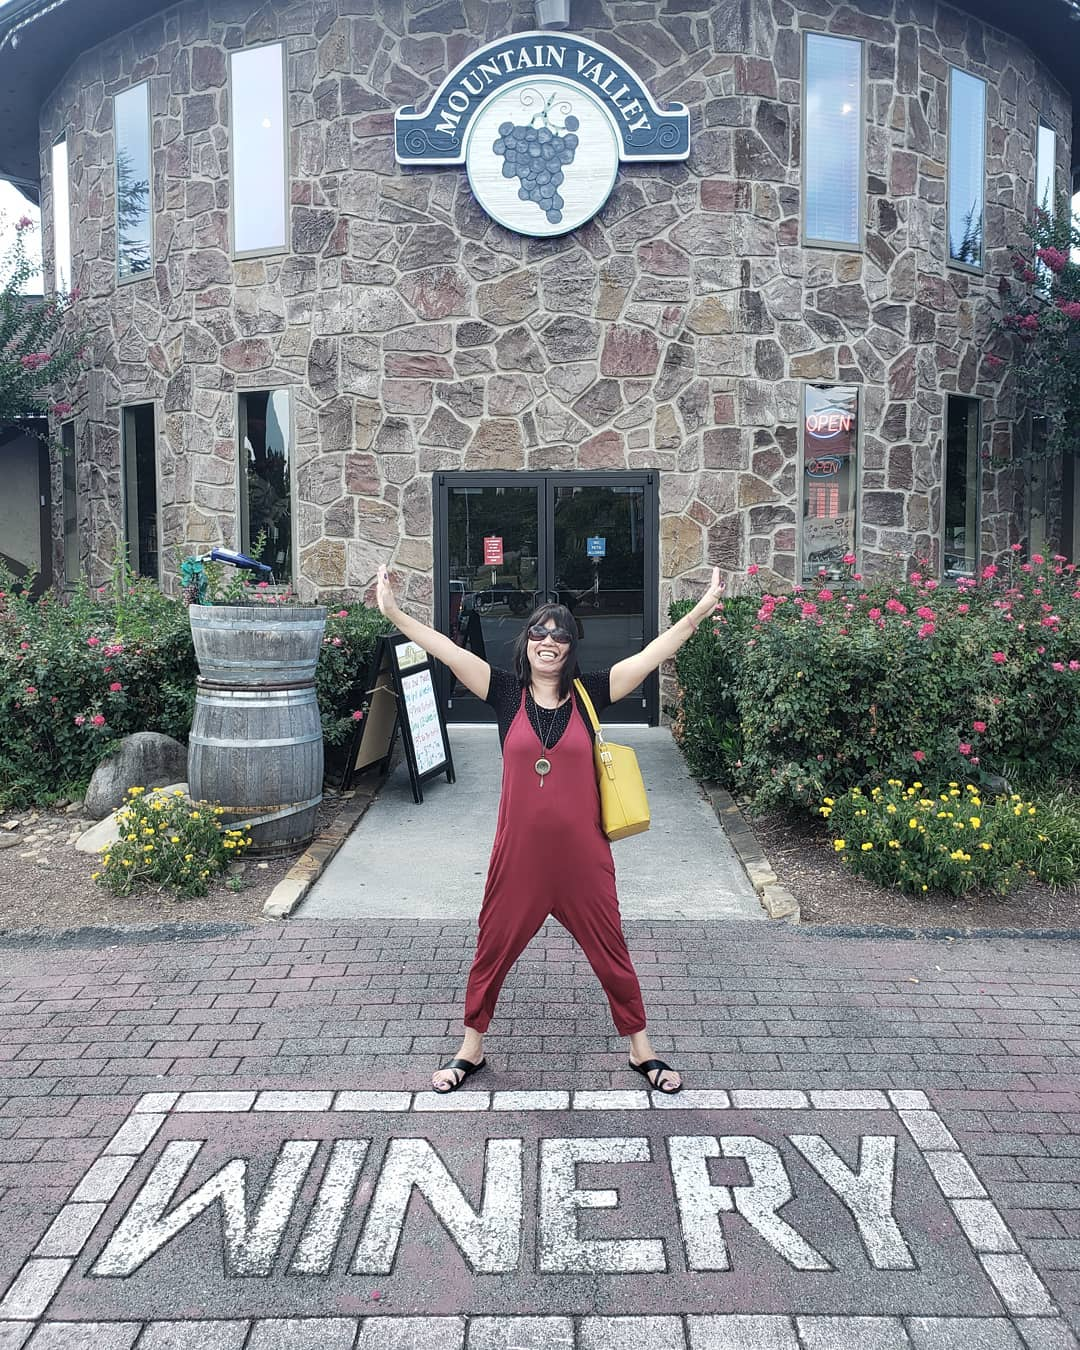 Pigeon Forge Things To Do - Mountain Valley Winery - Original Photo